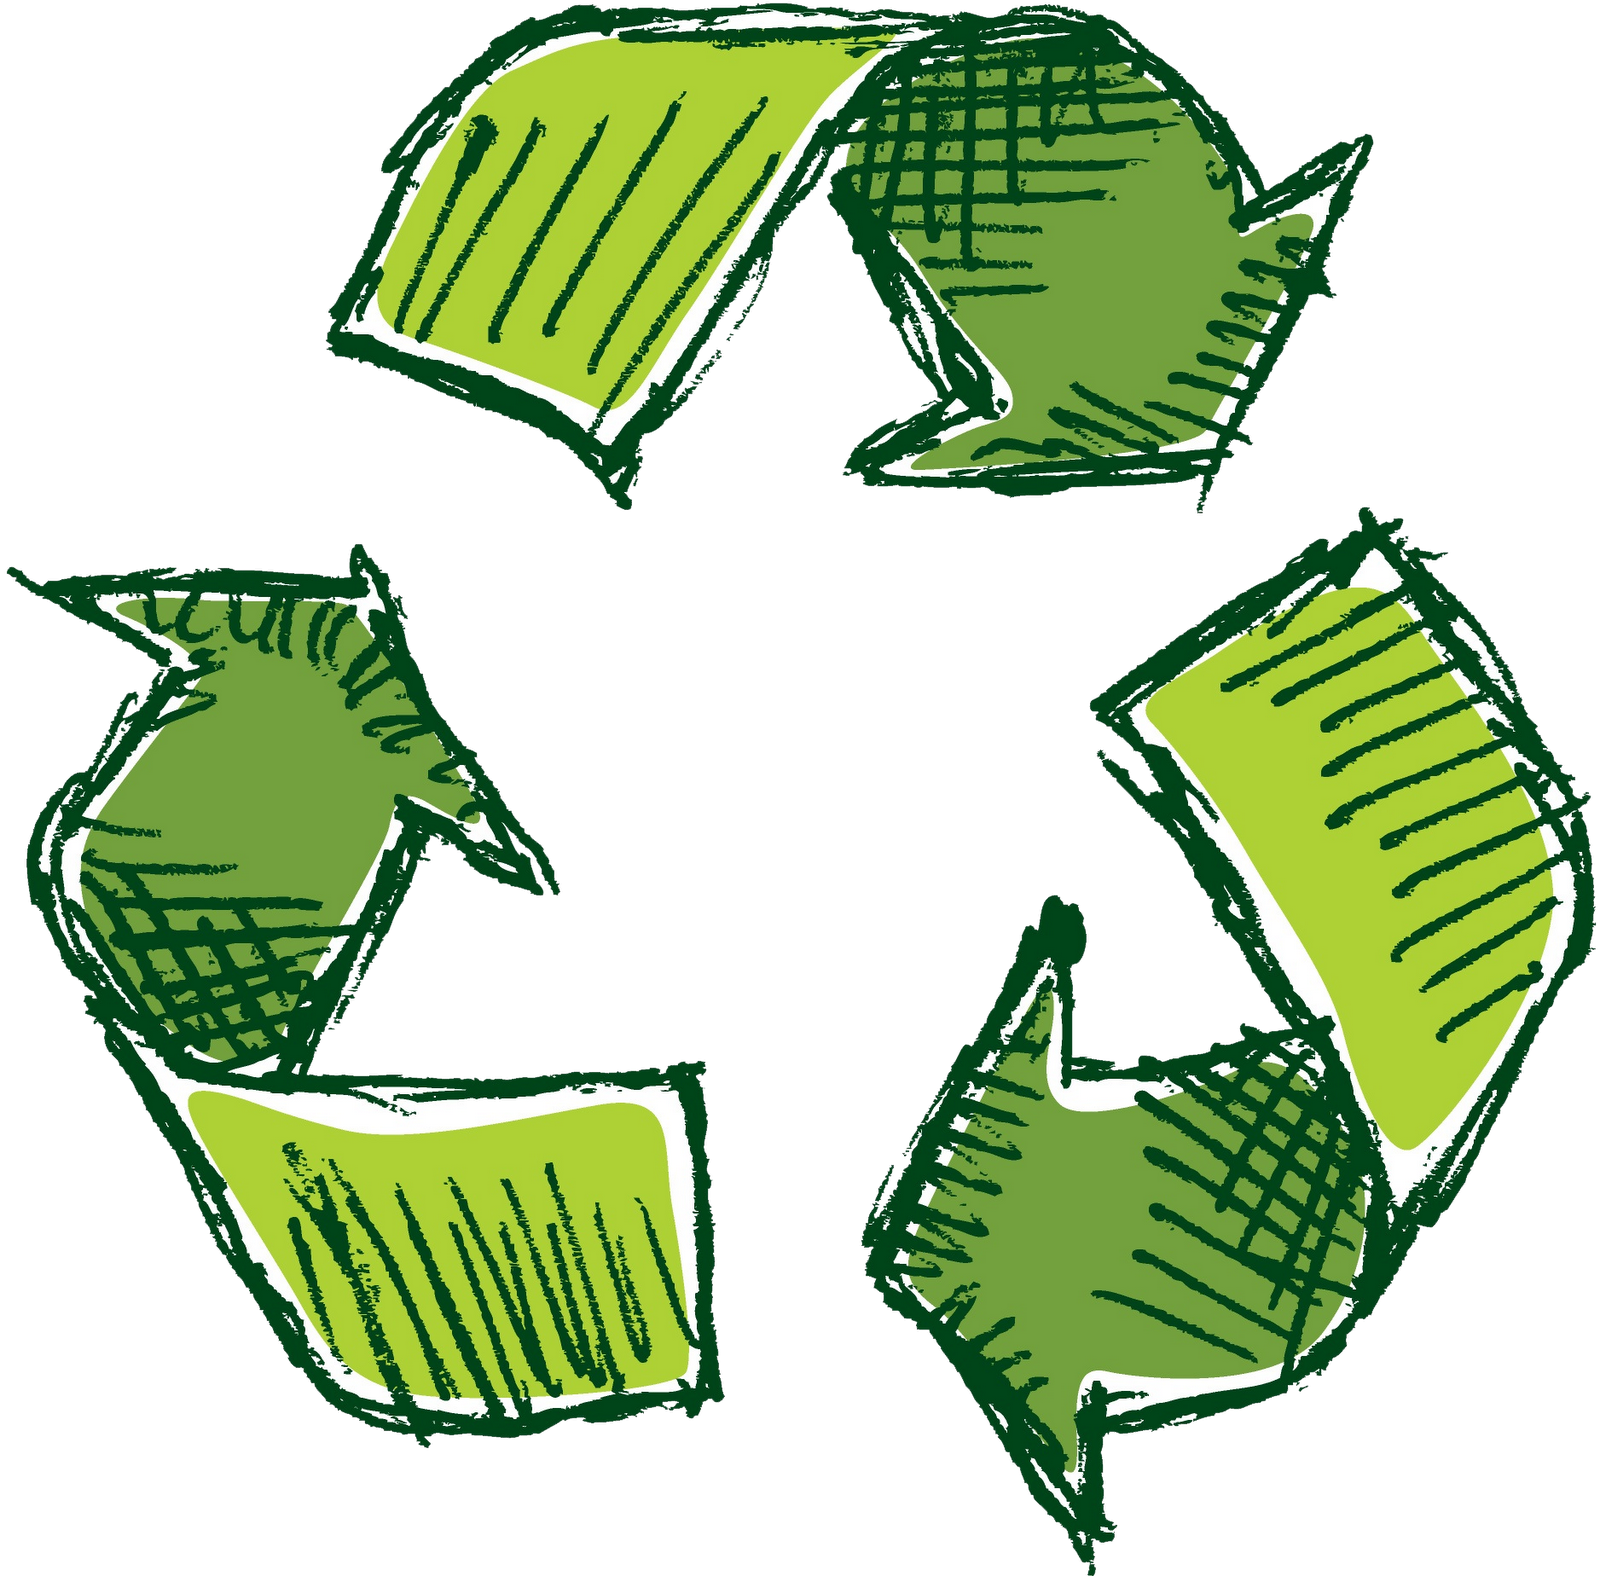 1600x1576 Reduce! Reuse! Recycle! Good Green Life